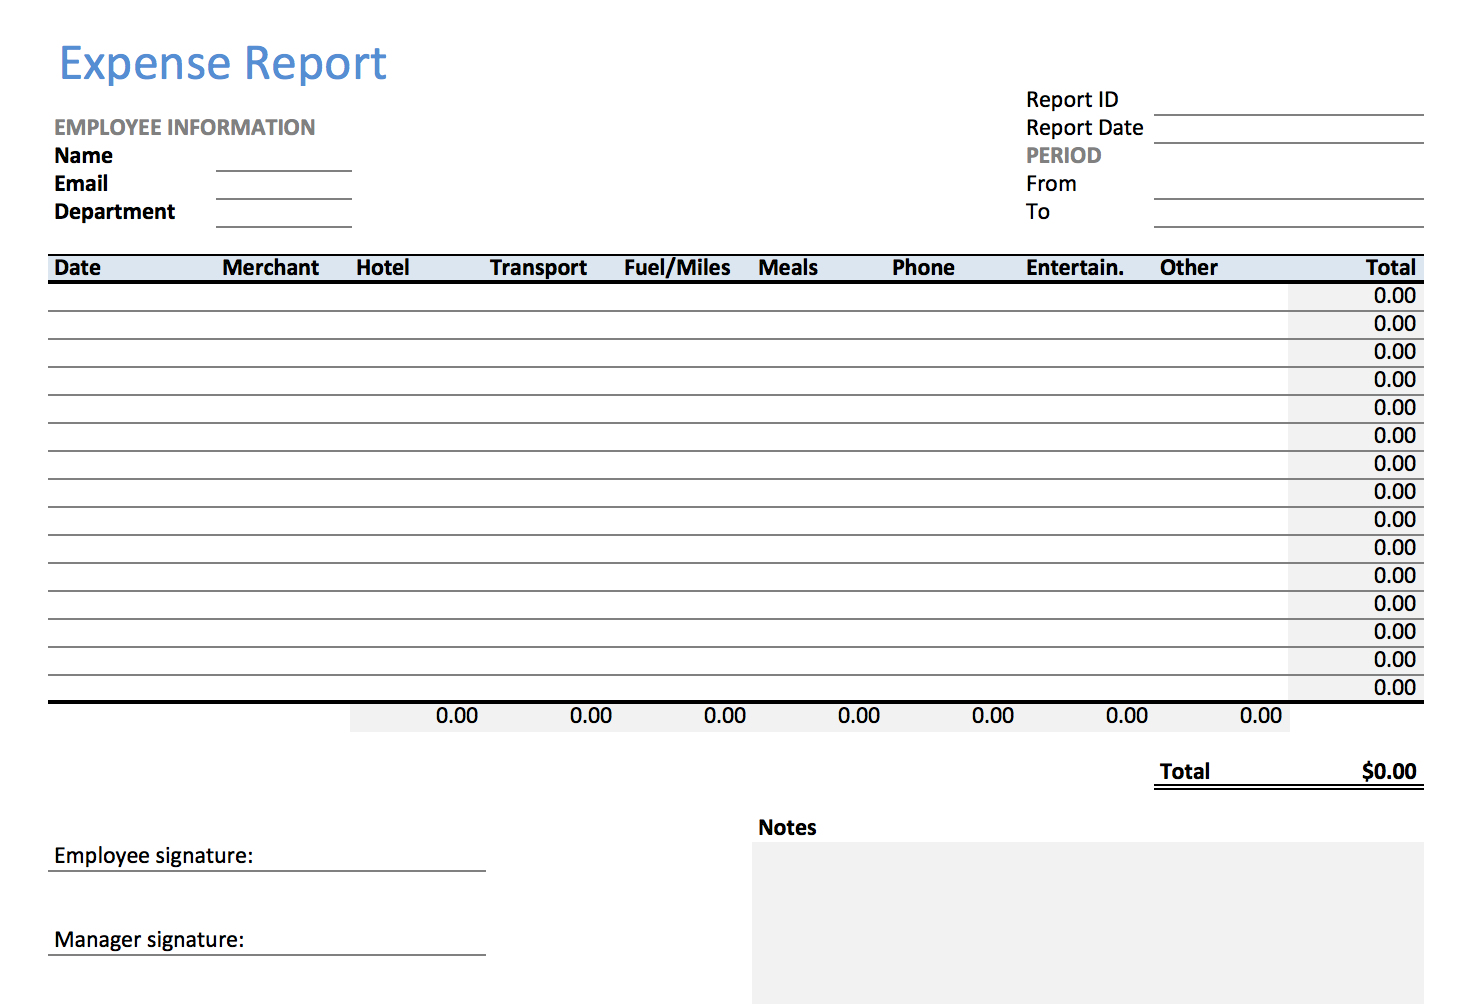 Excel Expense Report Template - KEEPEK on quicken expense reports, business expense reports, sap expense reports, access database expense reports, quickbooks cash receipts,